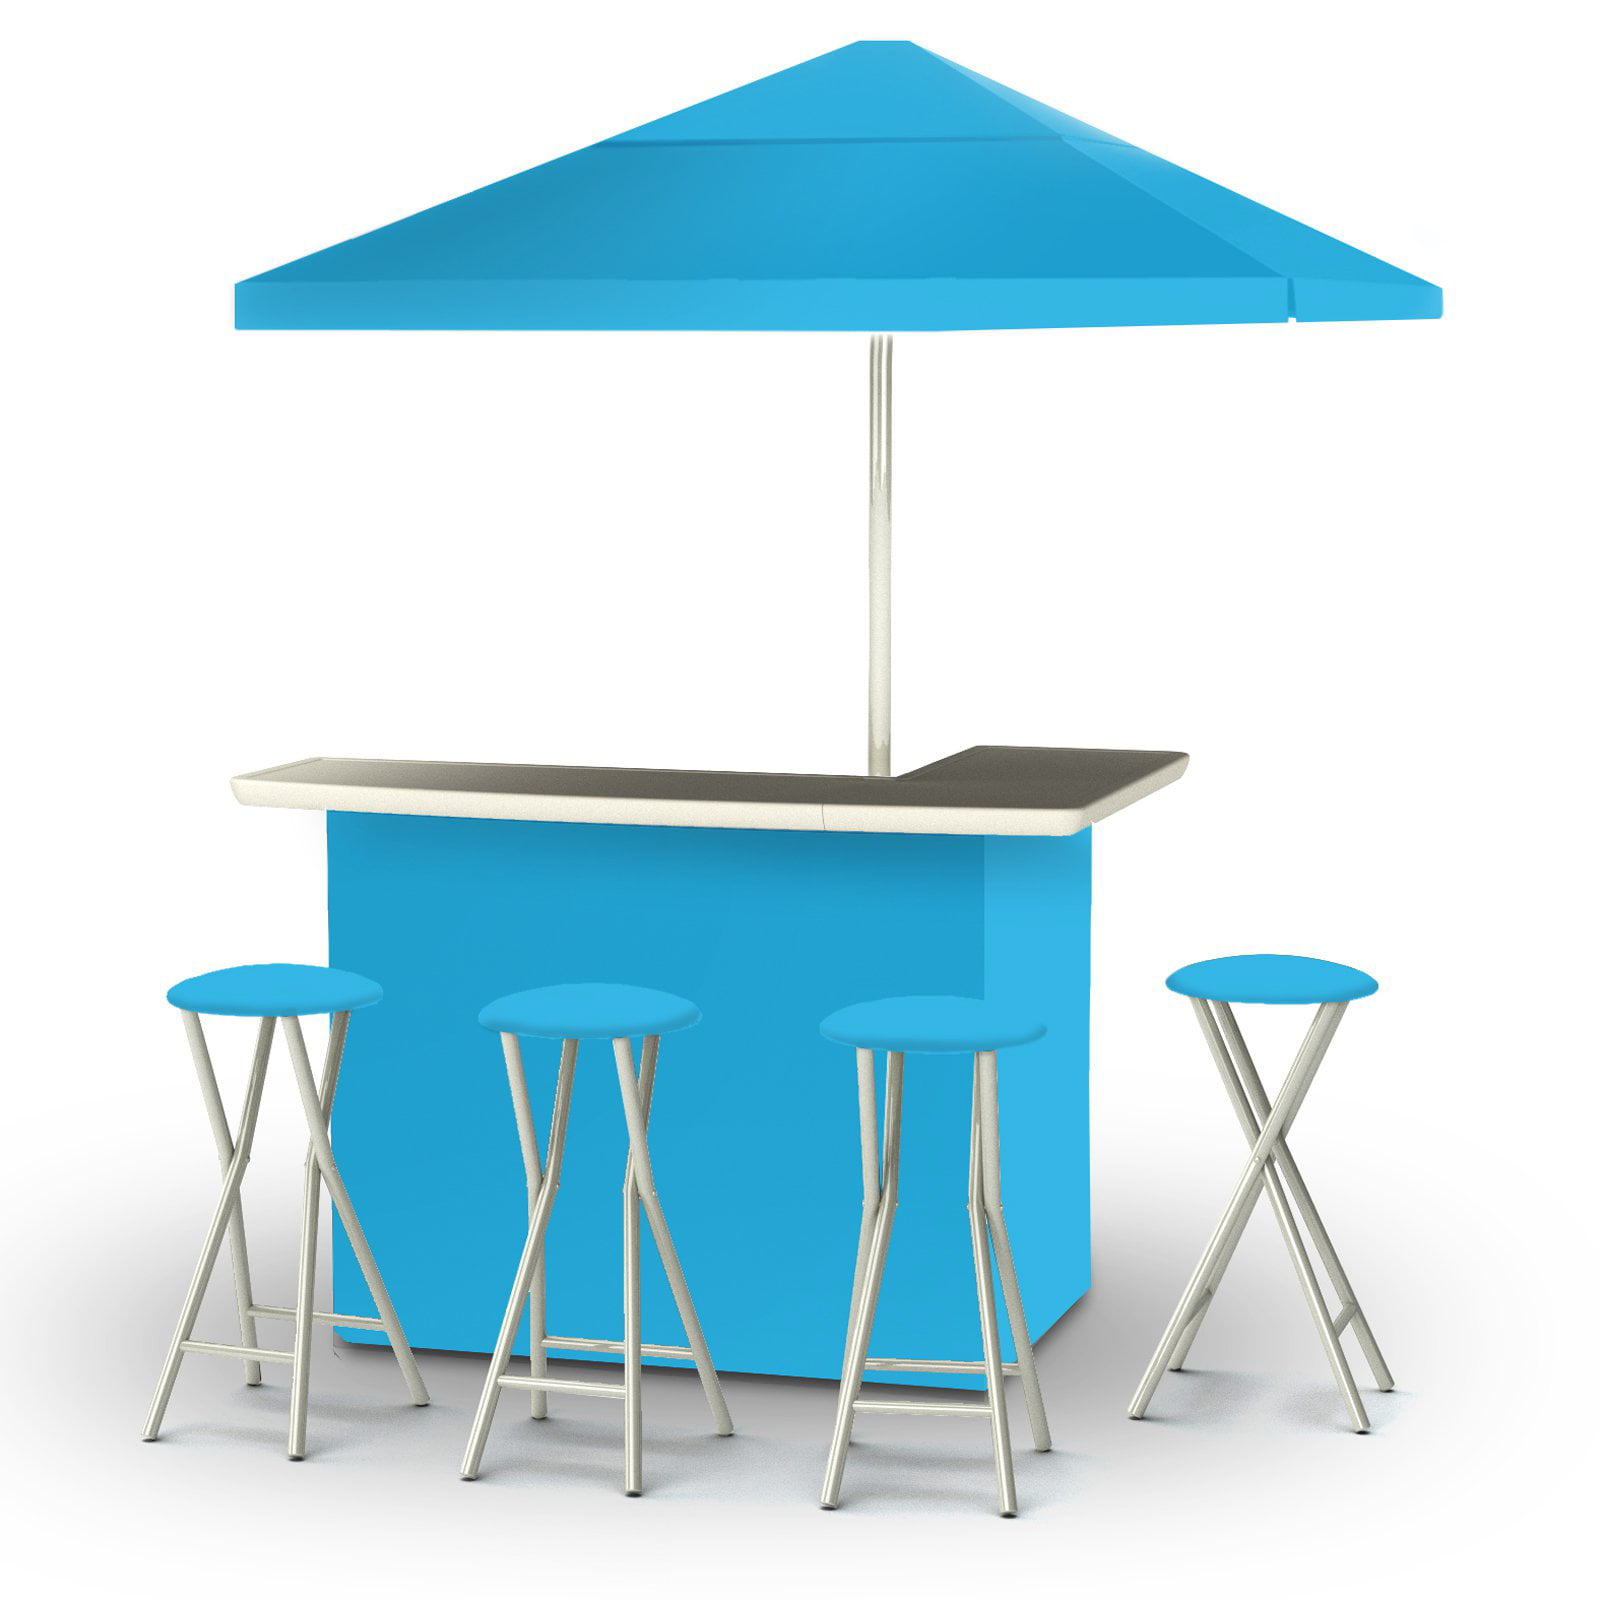 Fabulous Best Of Times Deluxe Package Solid Patio Bar And Tailgating Center With 4 Bar Stools Spiritservingveterans Wood Chair Design Ideas Spiritservingveteransorg